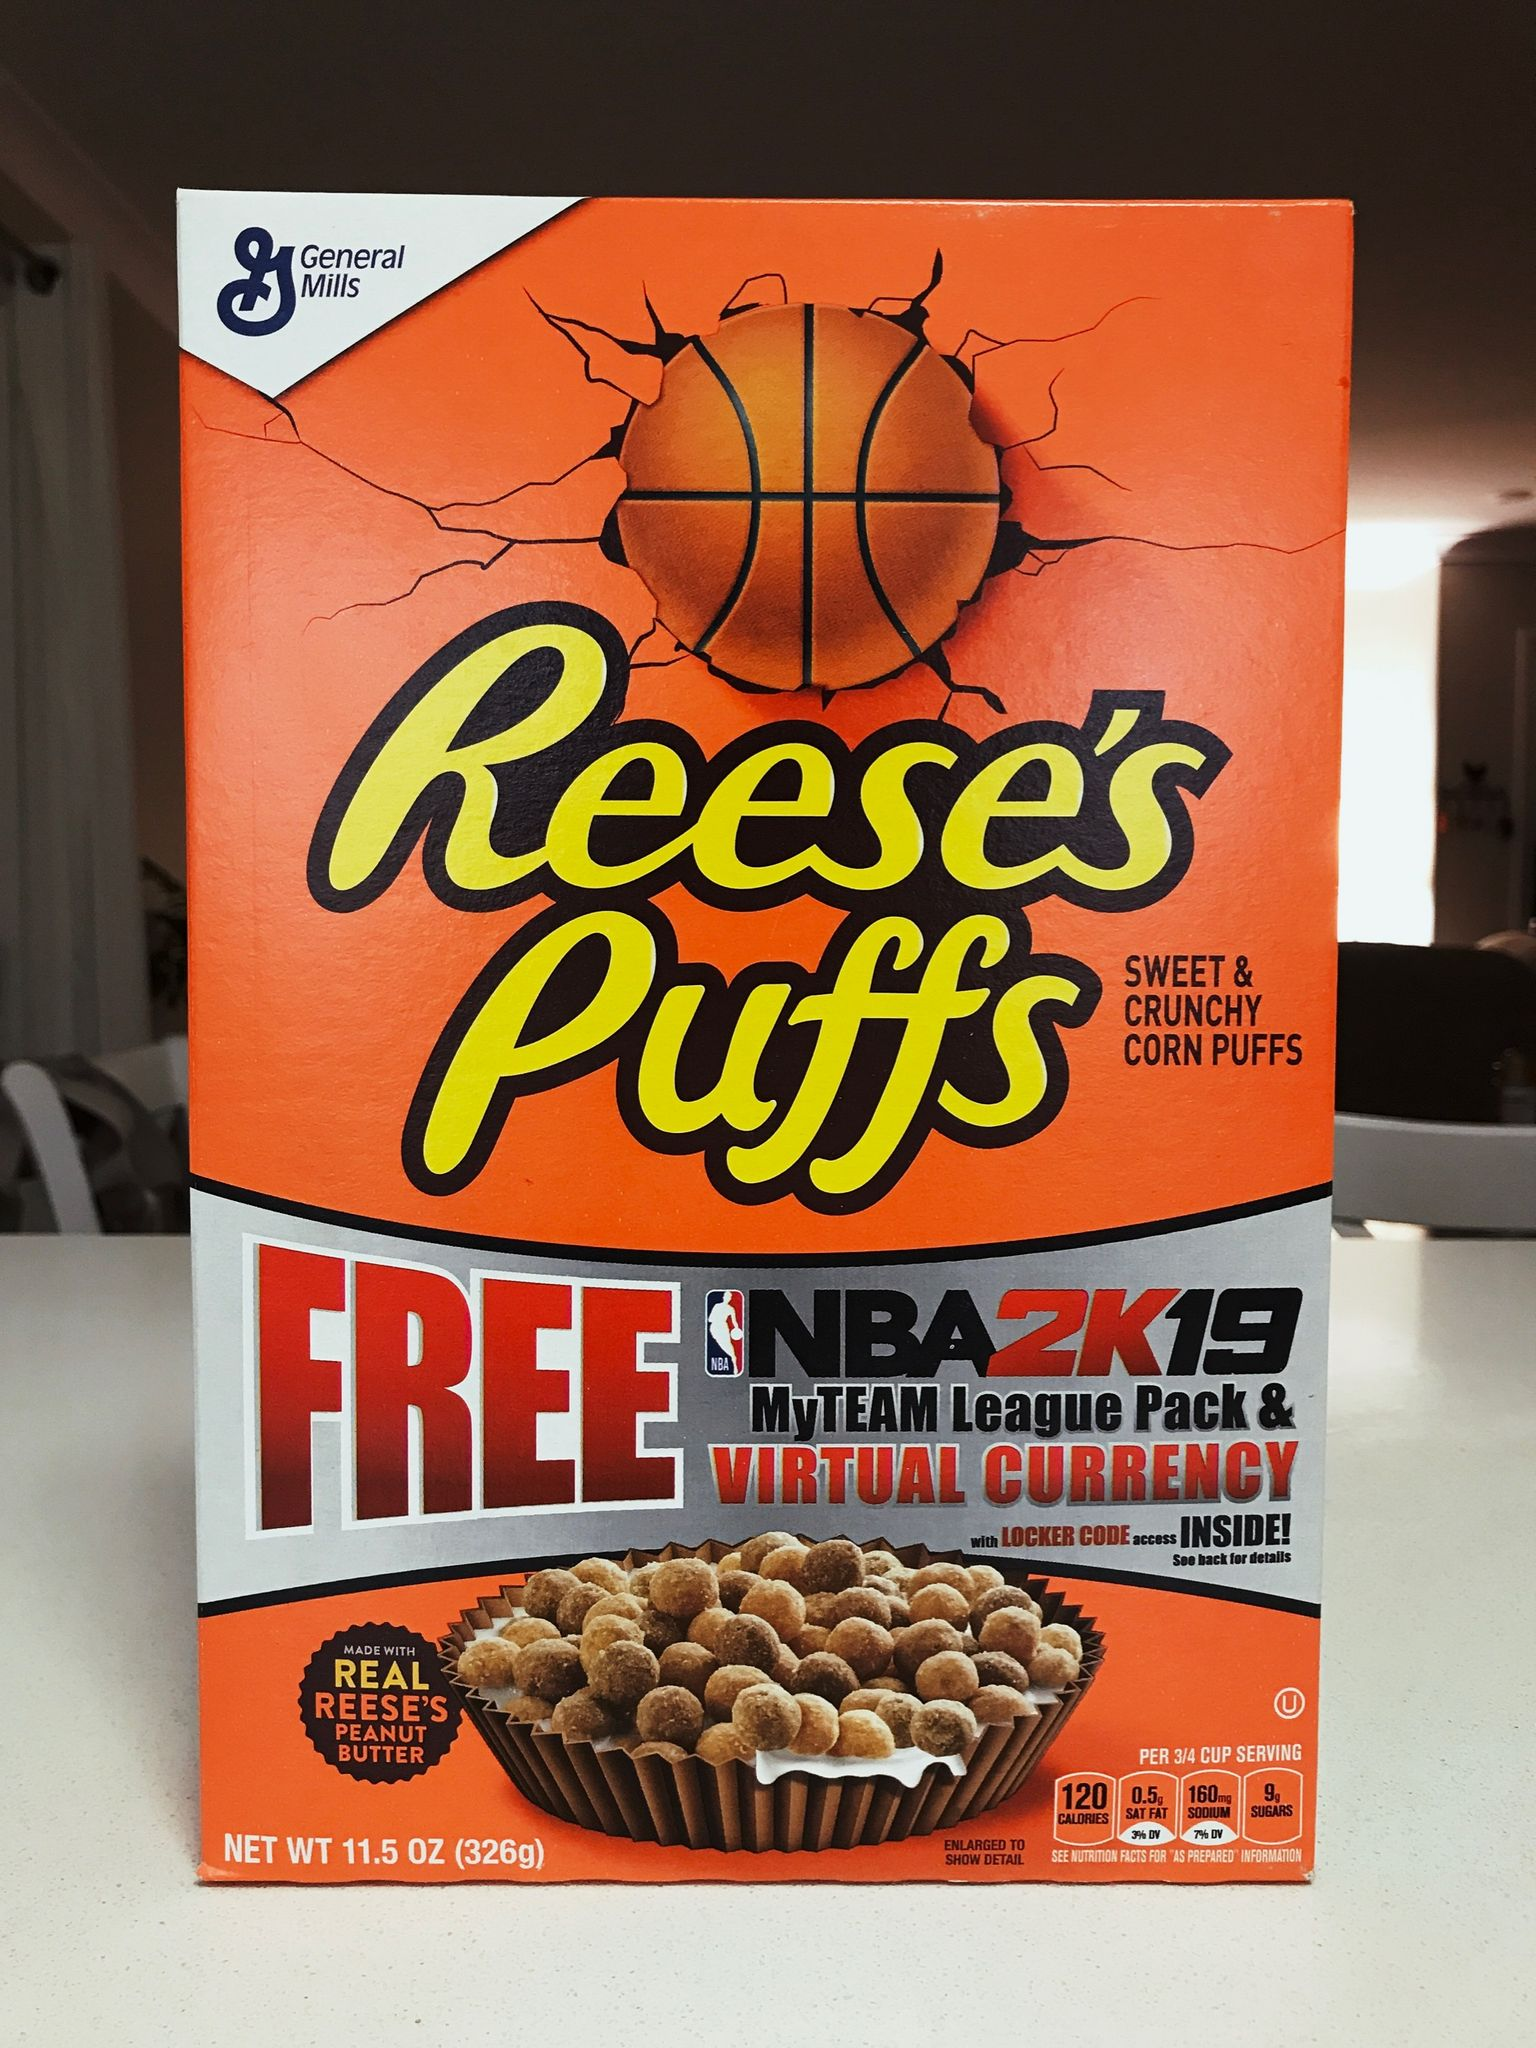 A box of Reece's Puffs peanut butter cereal.